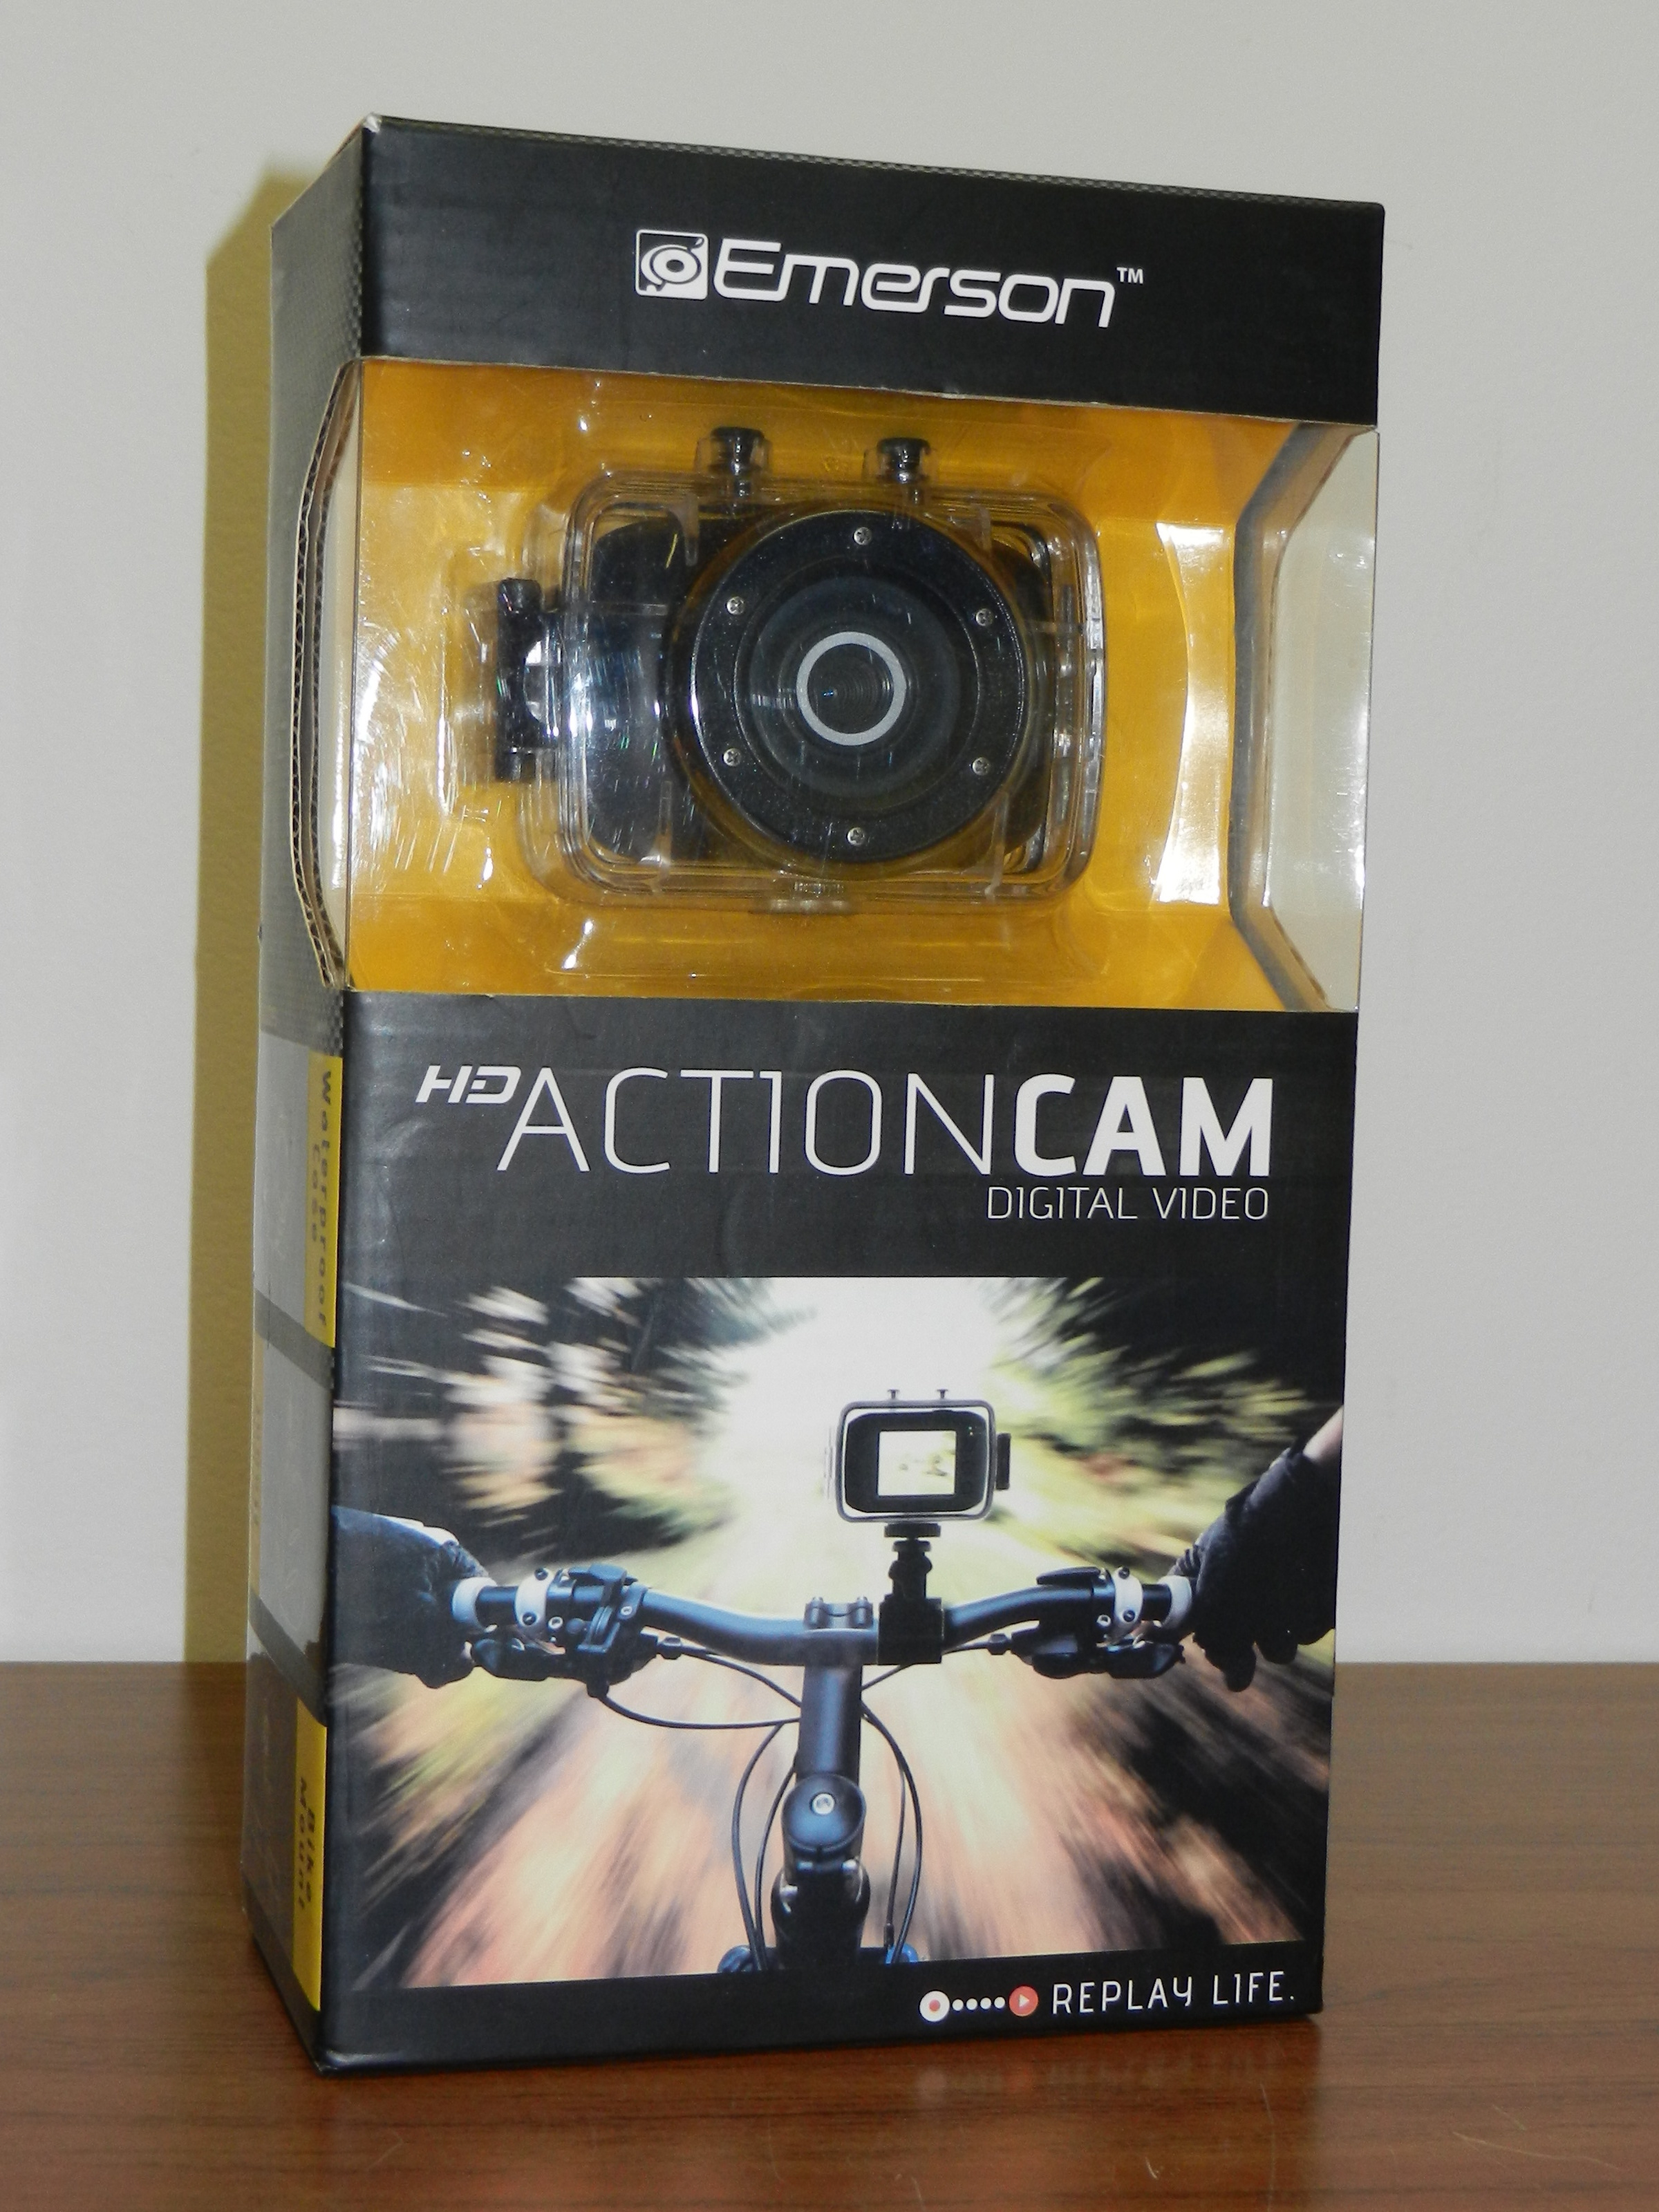 EMERSON - EVC355WG - HD ACTIONCAM